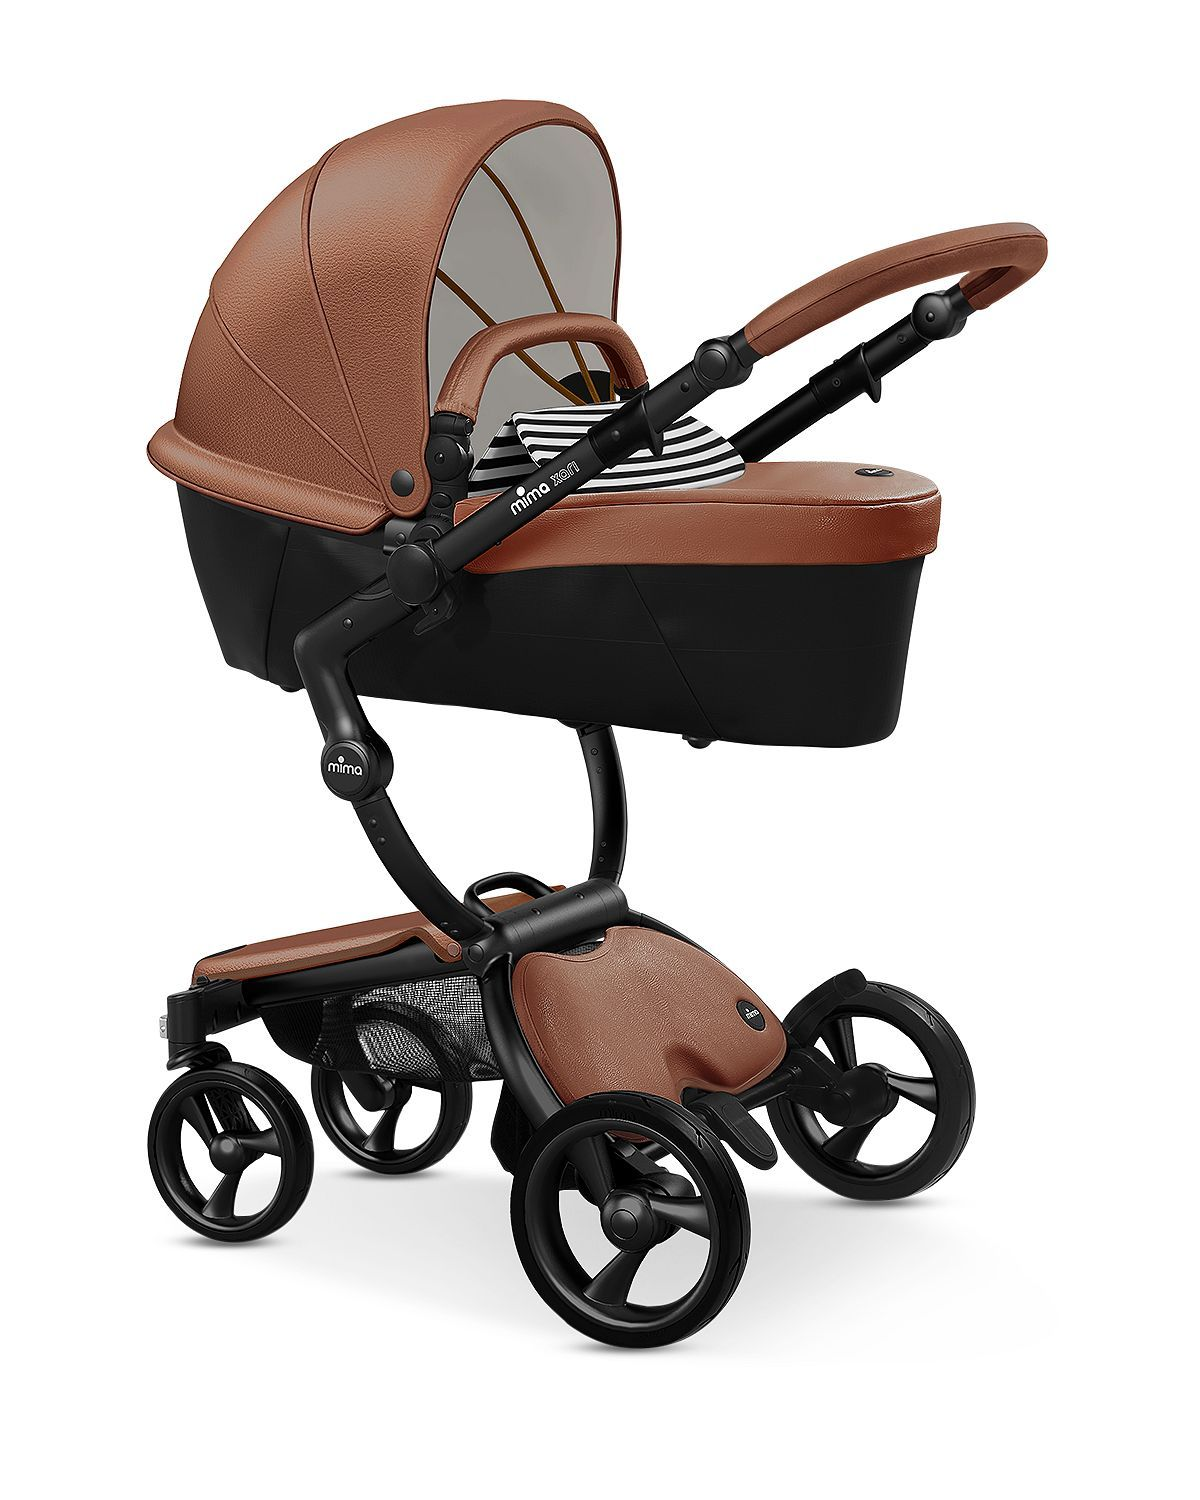 Xari Stroller with Black Chassis (With images) Mima xari